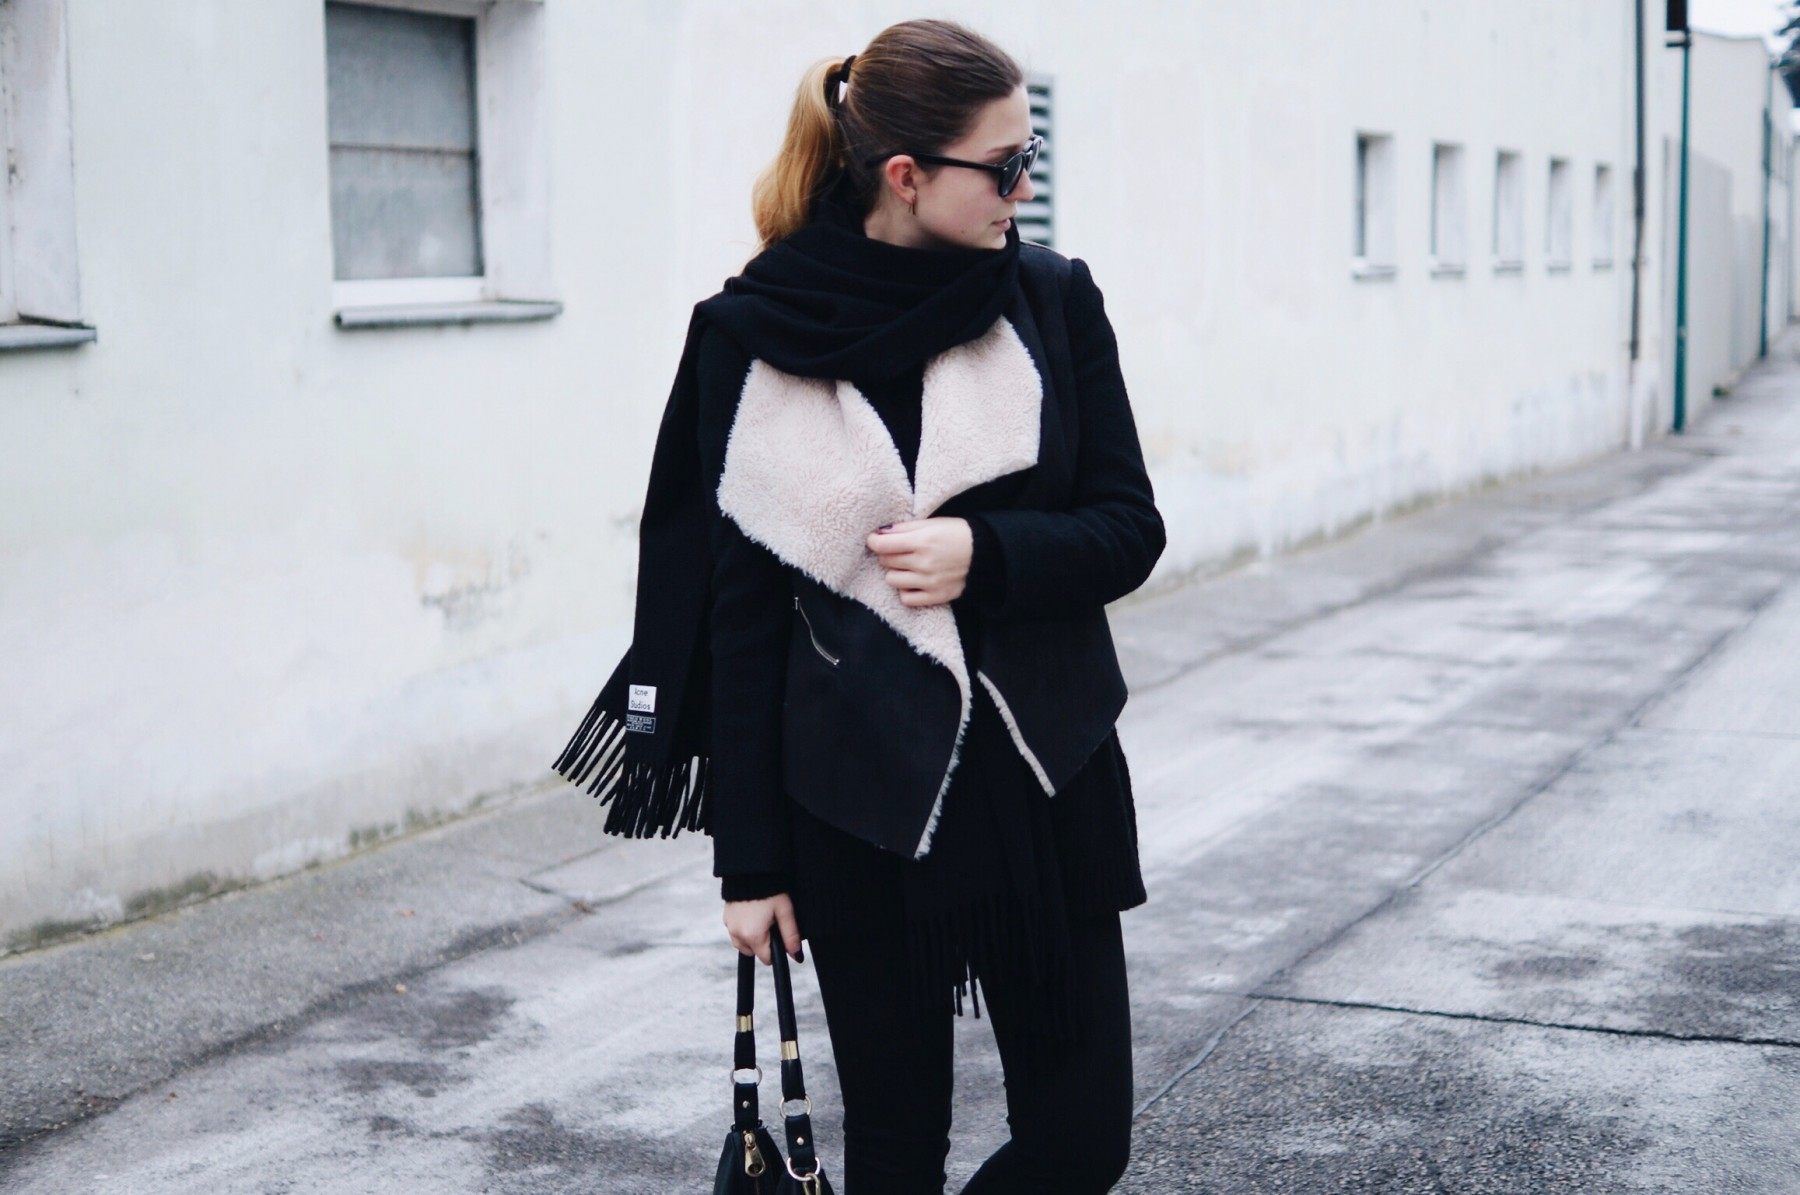 acne_studios_scarf_lambskin_jacket_winter_outfit9